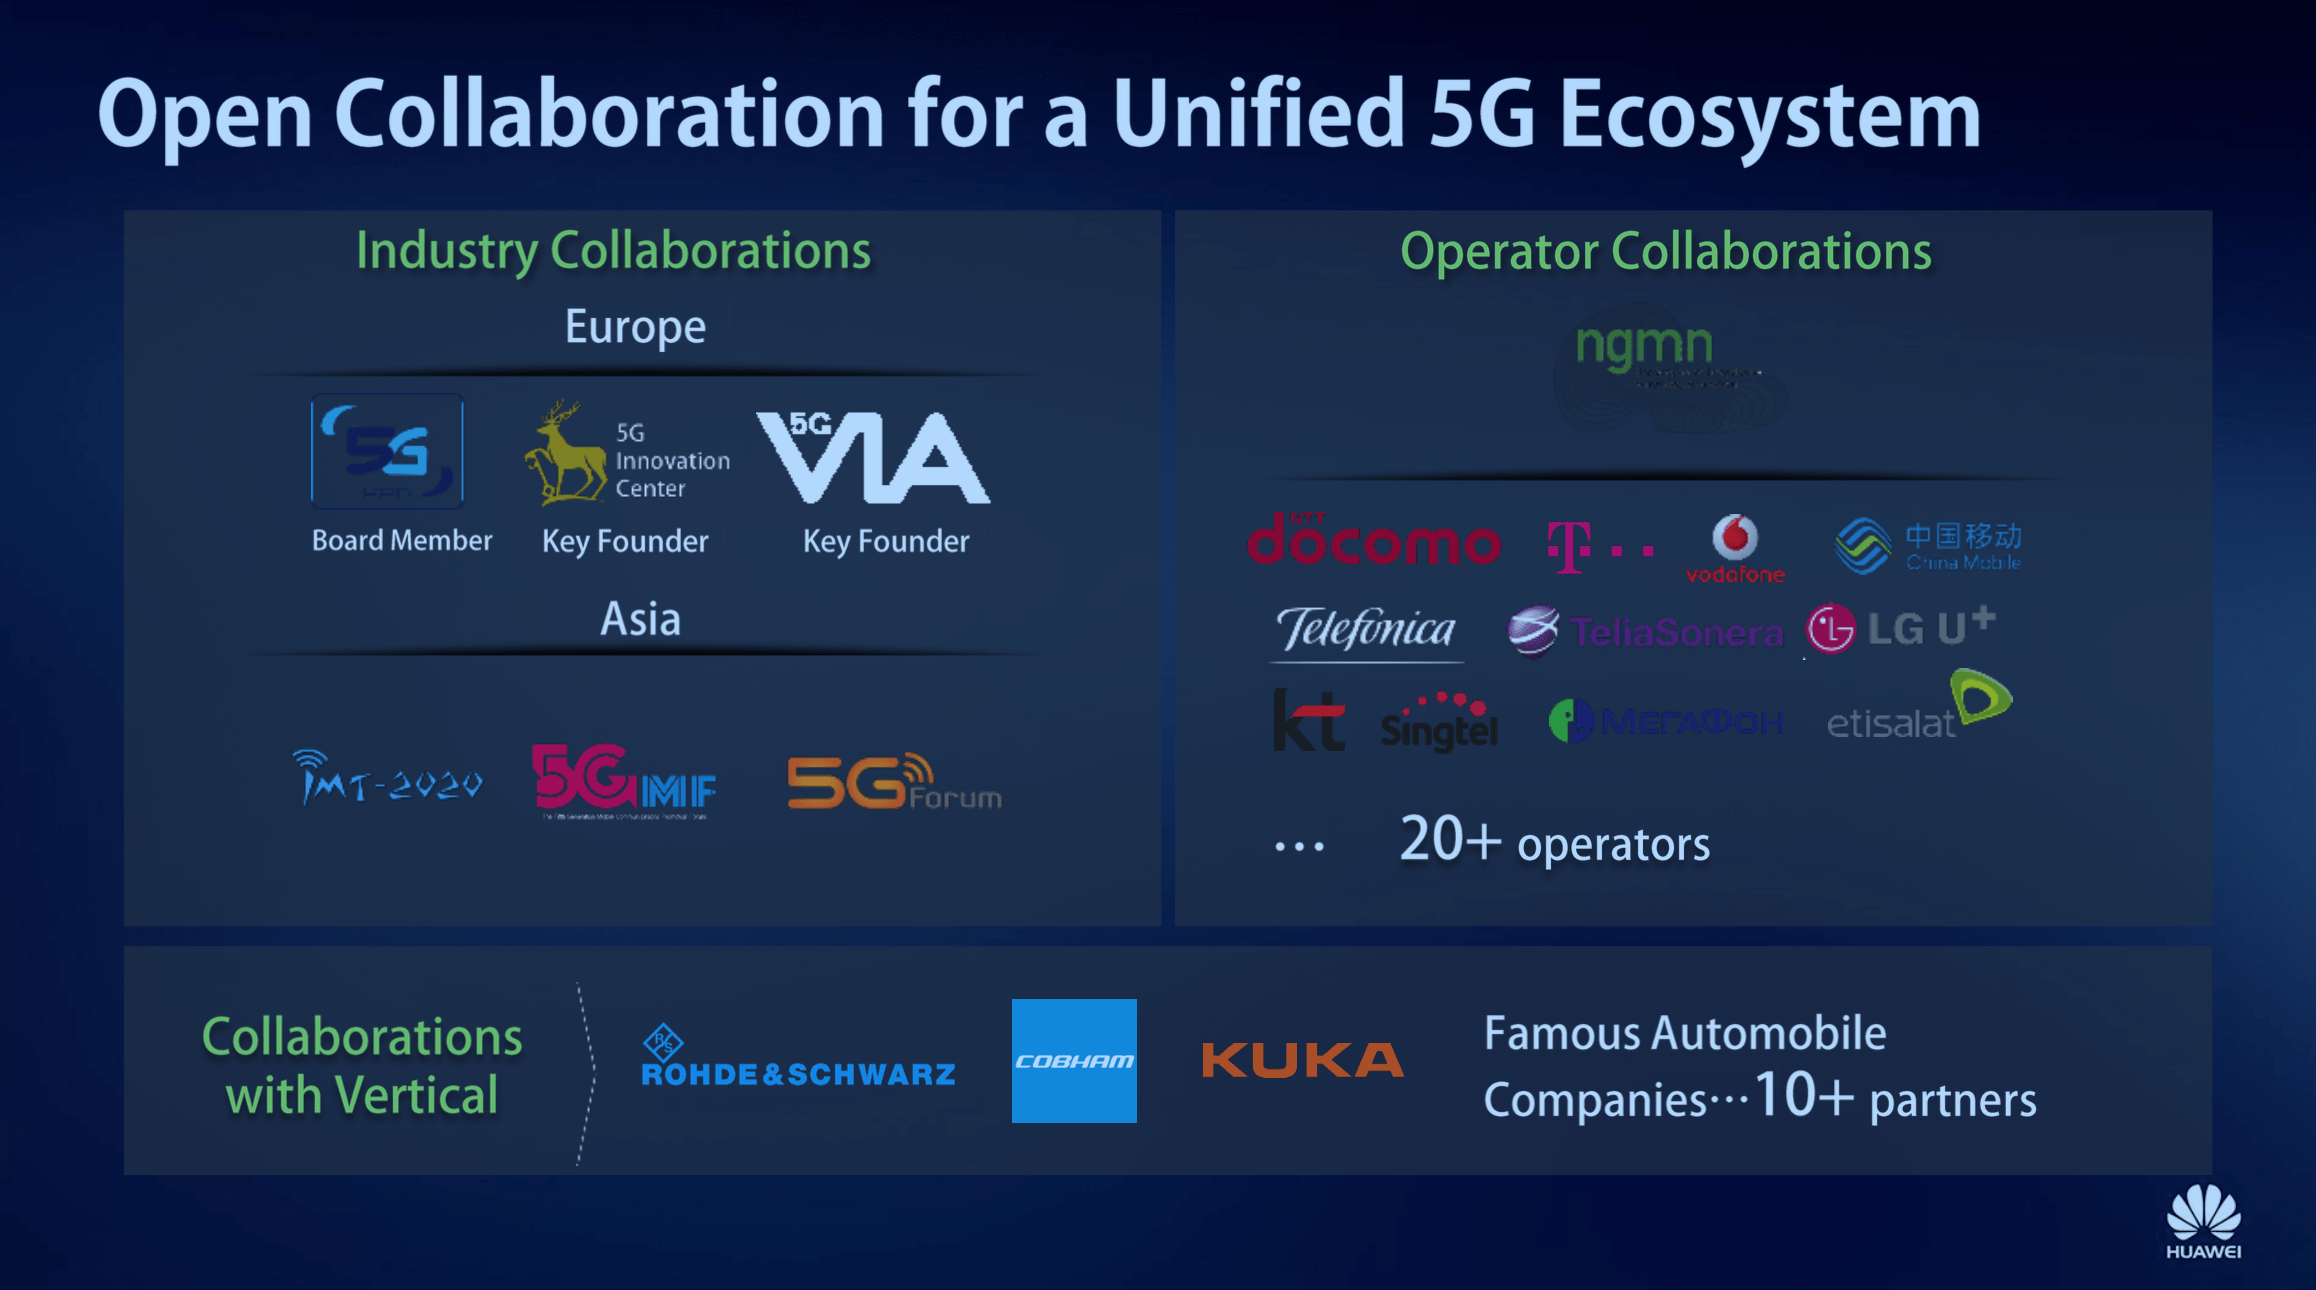 Huawei collaborations for 5G development